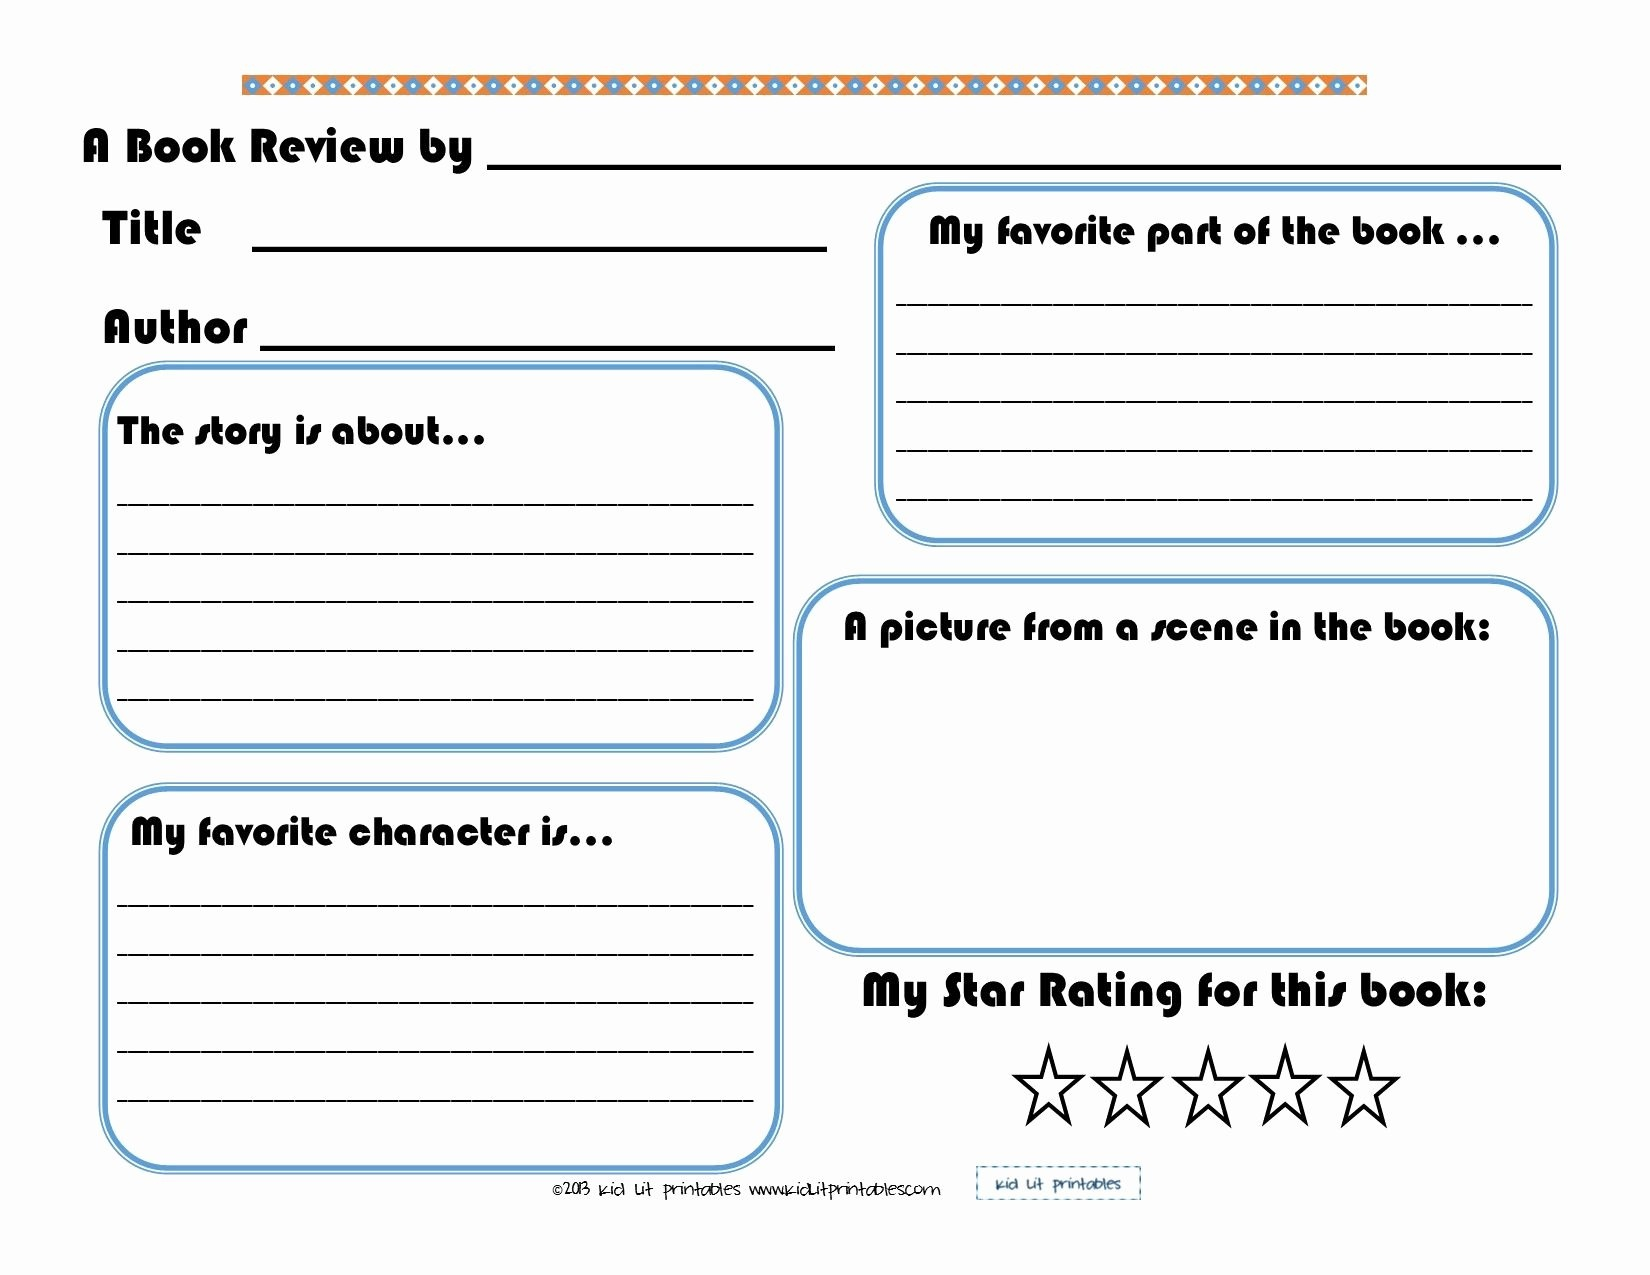 Free Book Report Template   Mathosproject - Book Report Template Free Printable